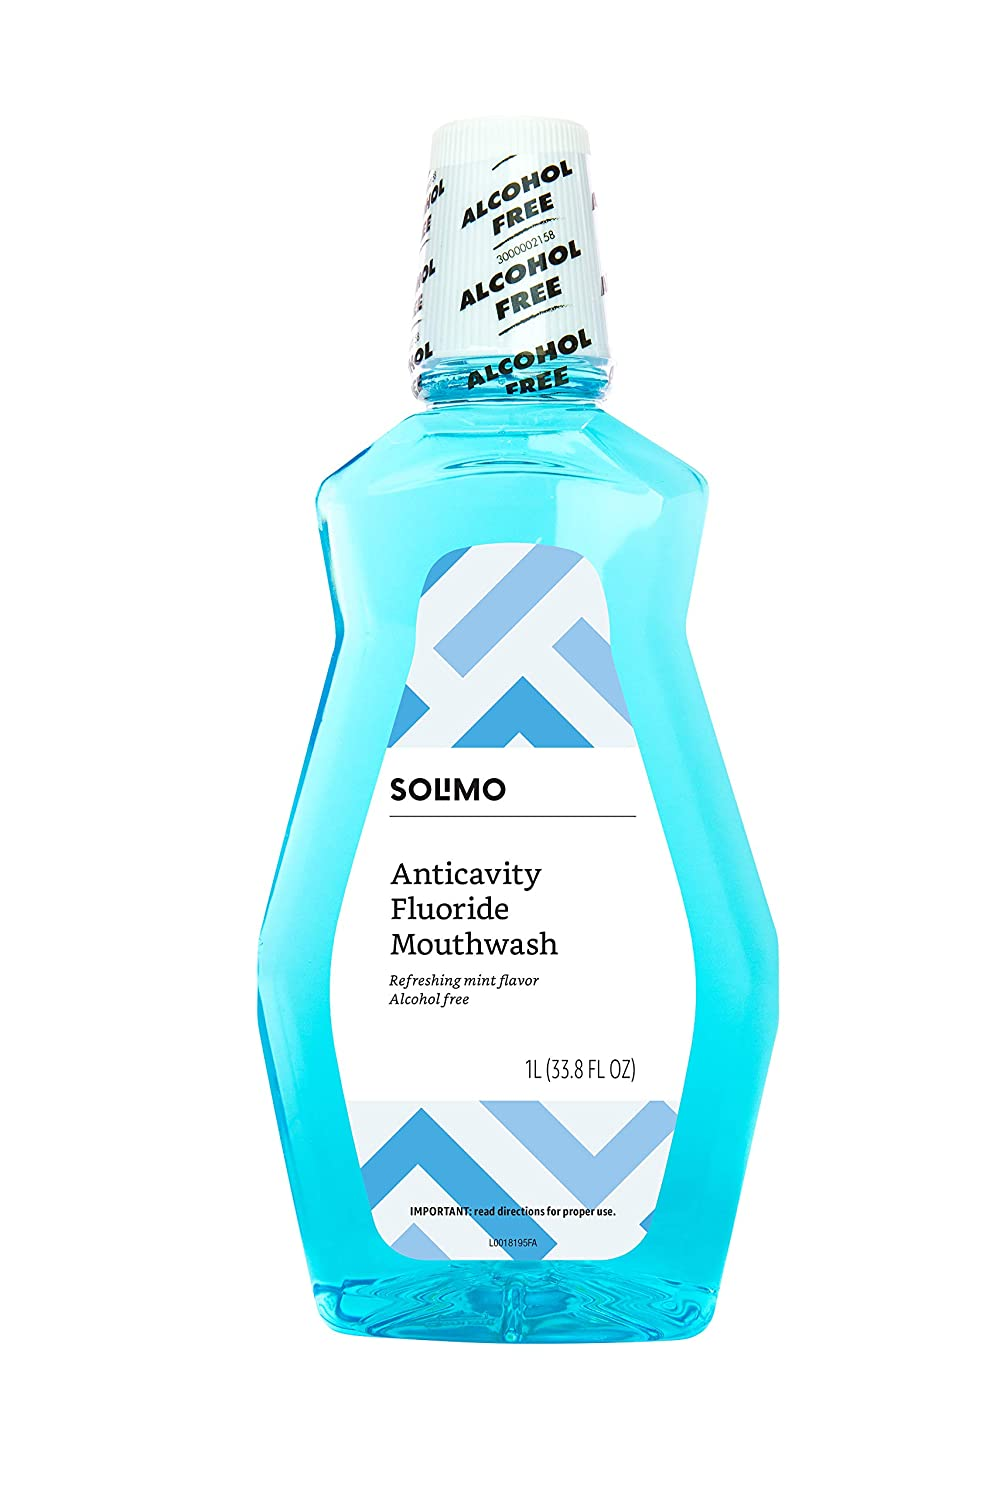 Amazon Brand - Solimo Anticavity Fluoride Mouthwash, Alcohol Free, Refreshing Mint, 1 Liter